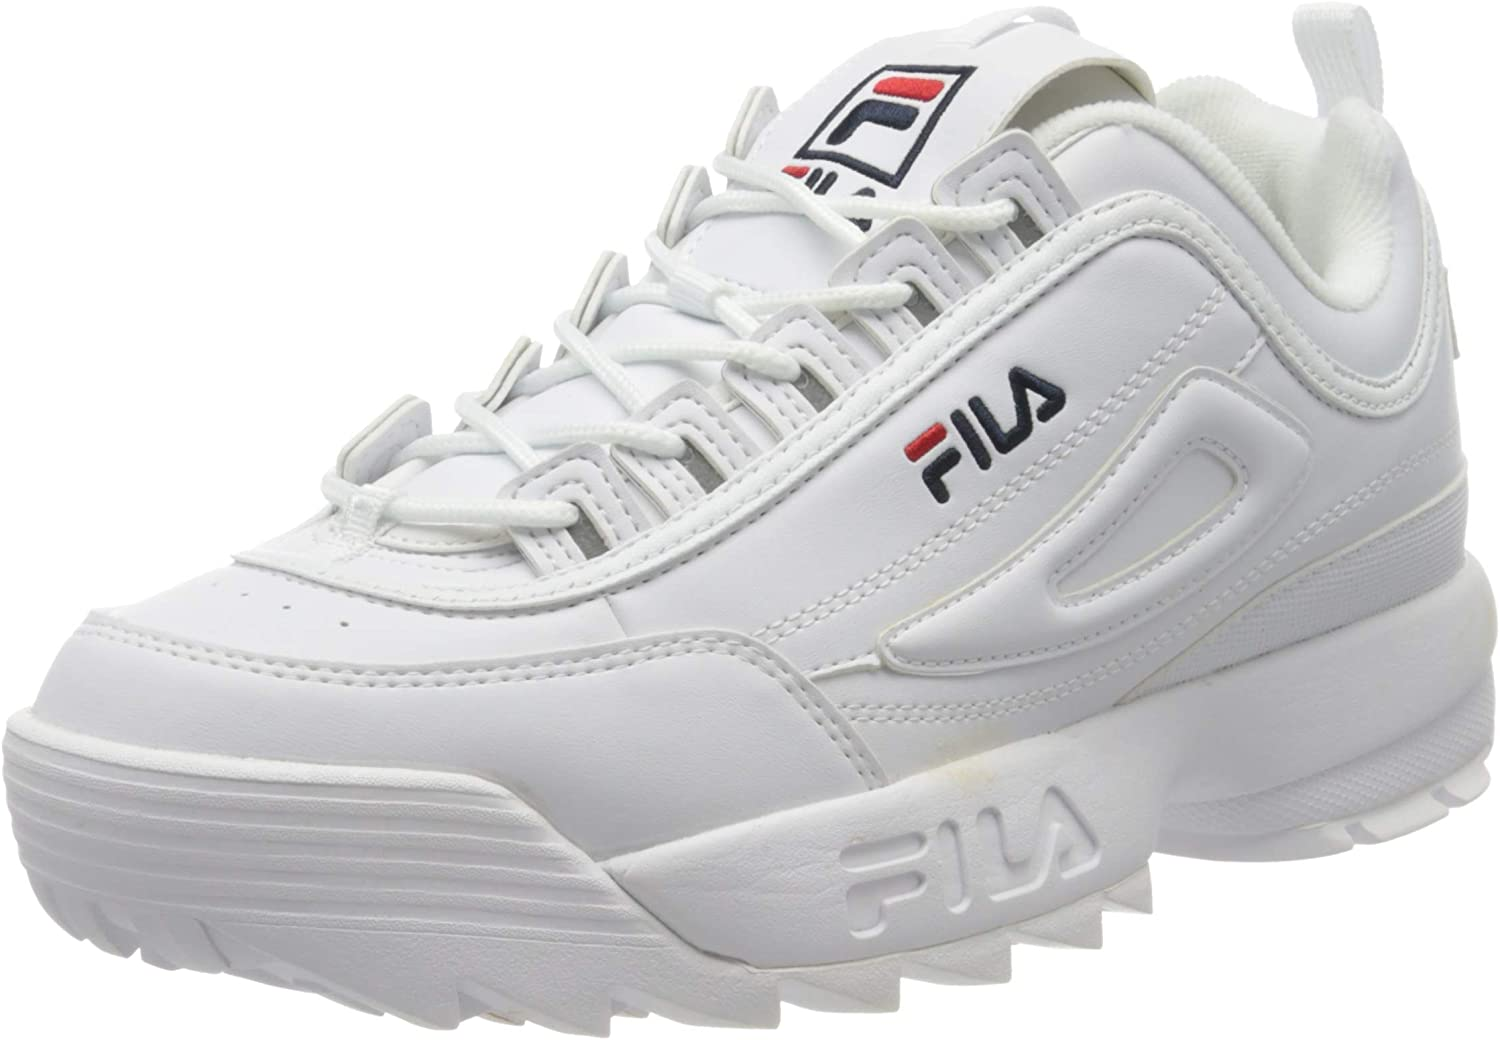 Fila Disruptor S Low WMN 1010436 70w, Baskets Femme